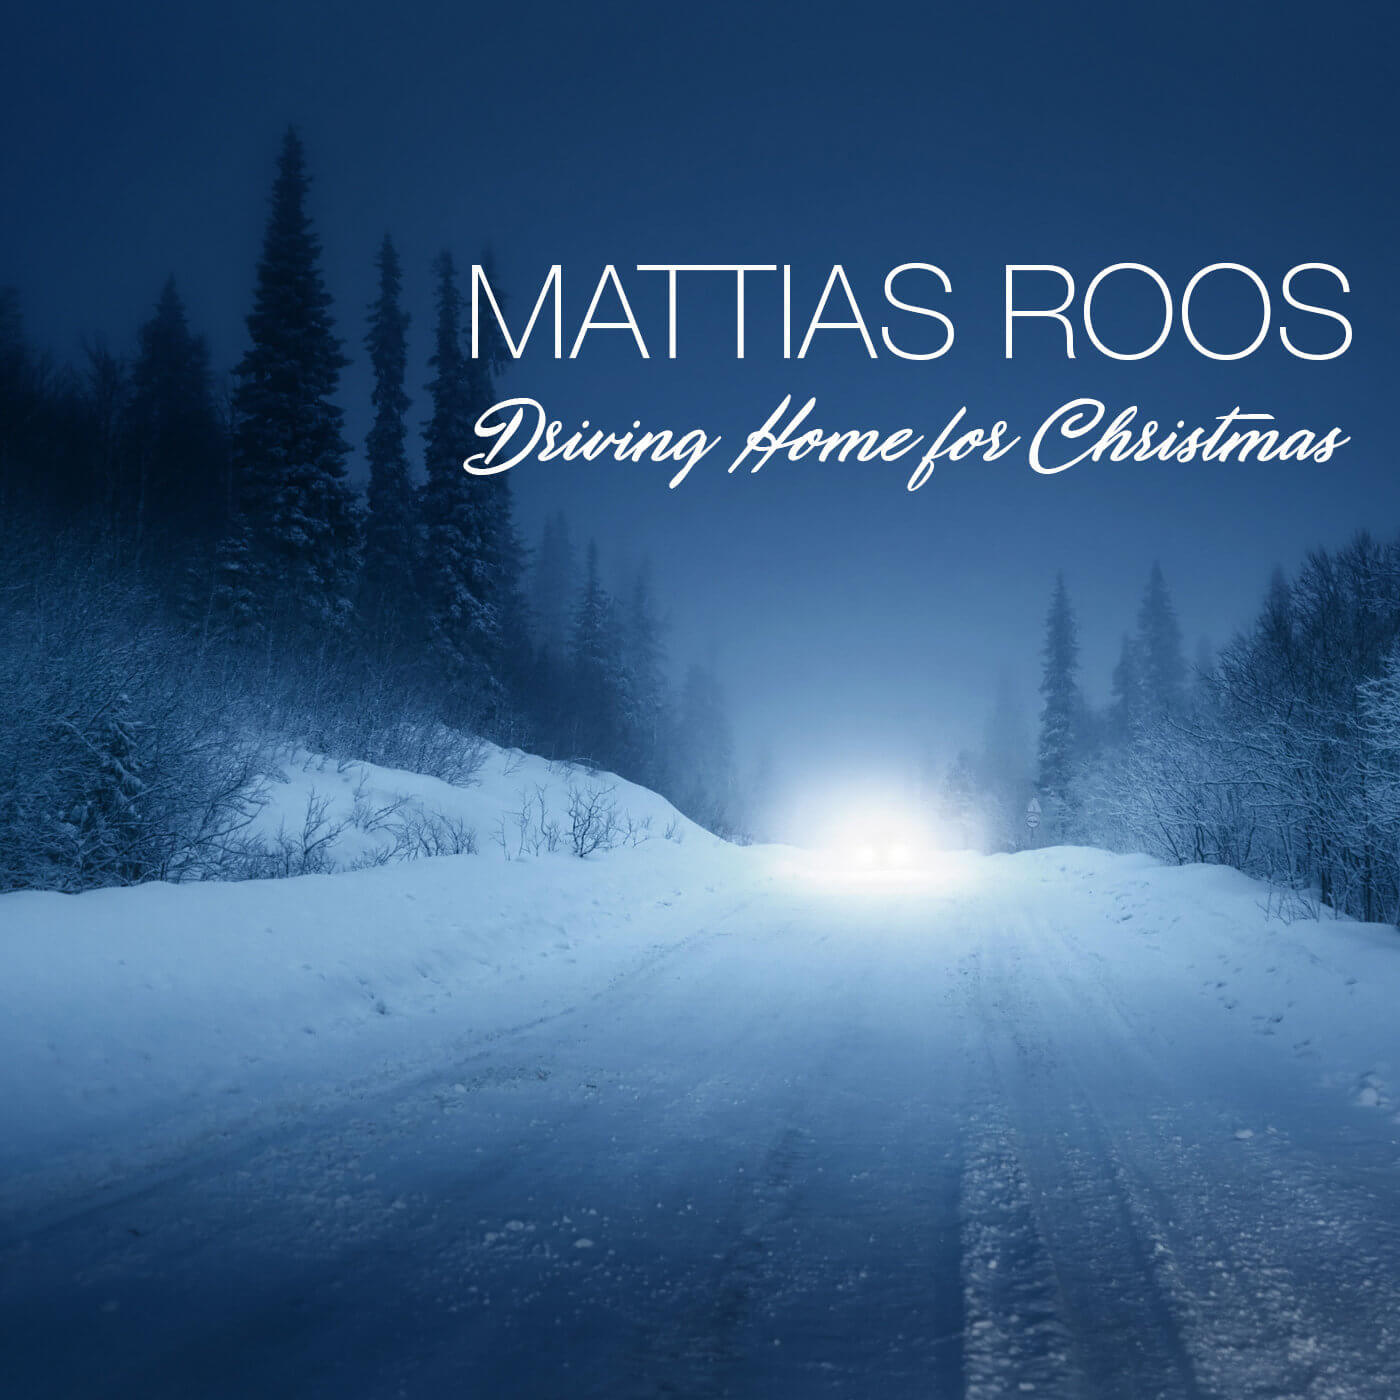 Mattias Roos New Christmas EP Release